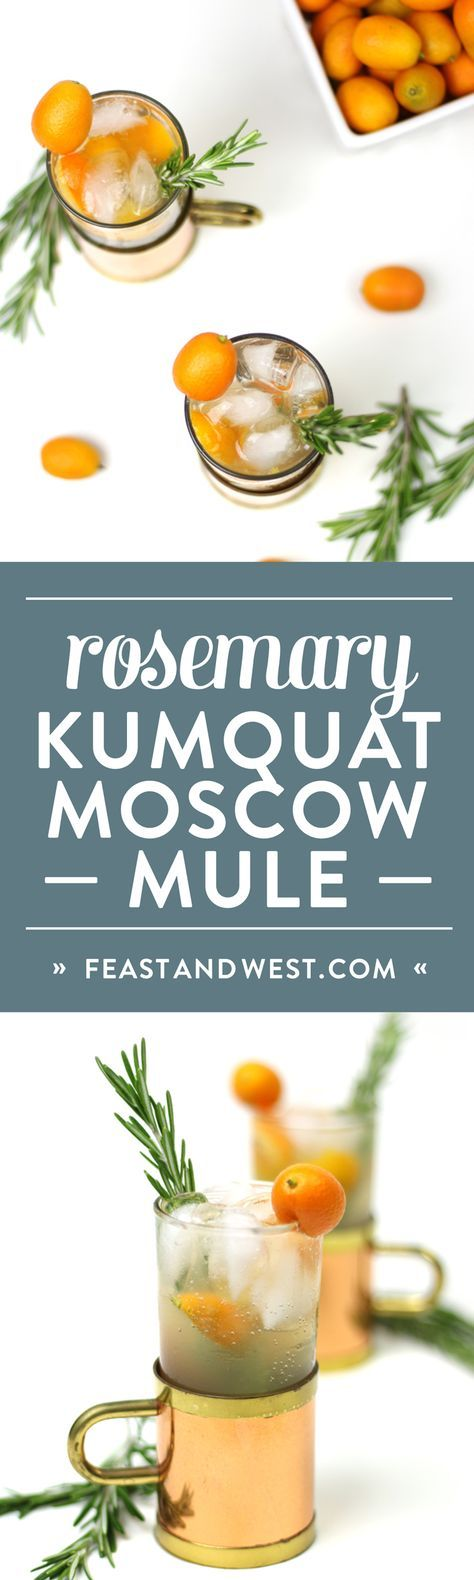 Pick up some pearly kumquats, cut some rosemary and combine for a totally new way to appreciate winter citrus. The Rosemary Kumquat Moscow Mule is a bright and refreshing variation on everyone's favorite drink with vodka and ginger beer. Copper mug optional, but totally encouraged. (via http://feastandwest.com)